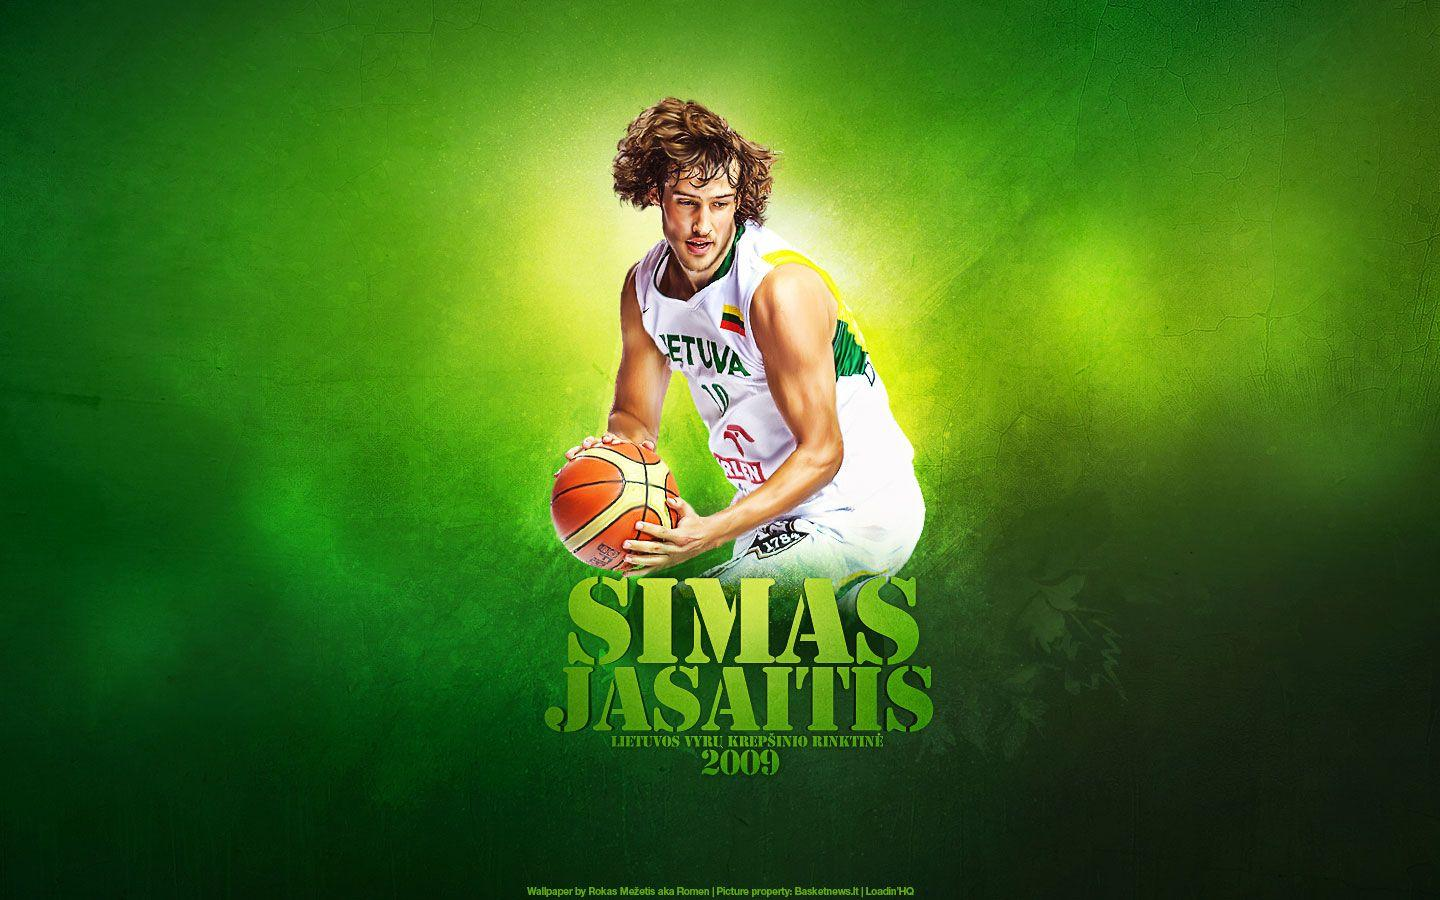 Lithuania Basketball Images, Pictures, Wallpapers